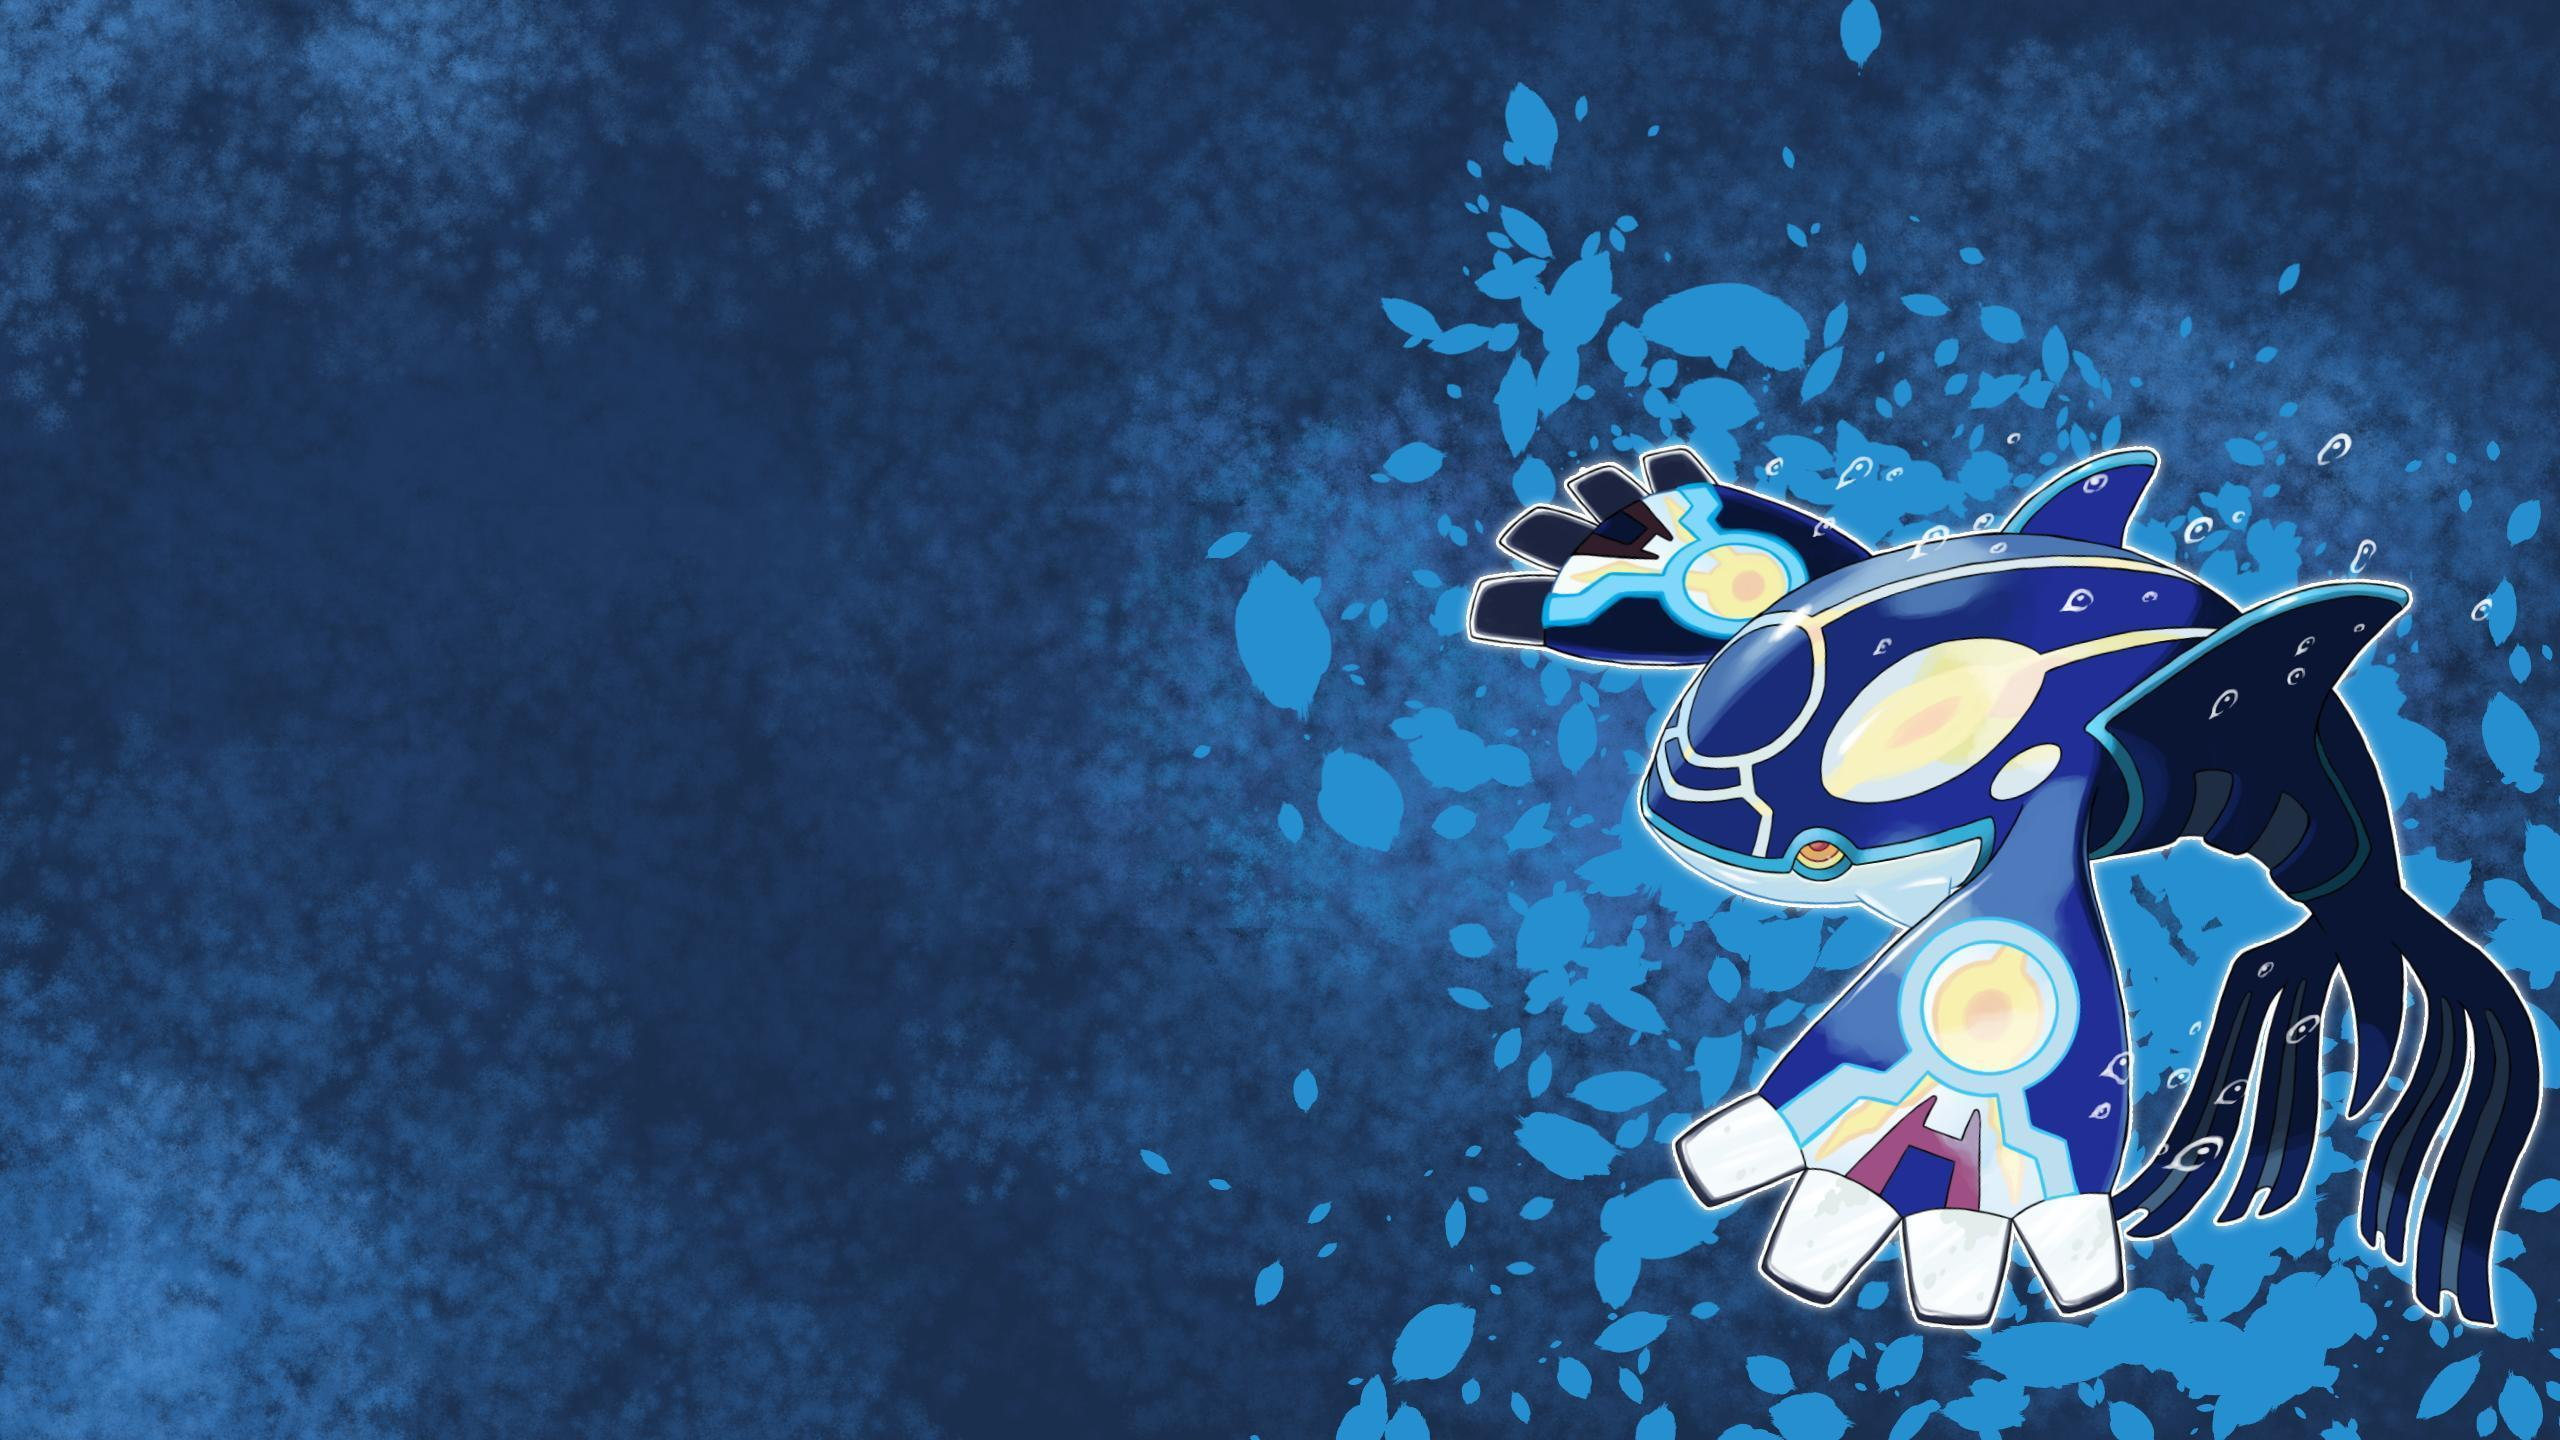 Wallpaper Primal Kyogre by AlouNea on DeviantArt